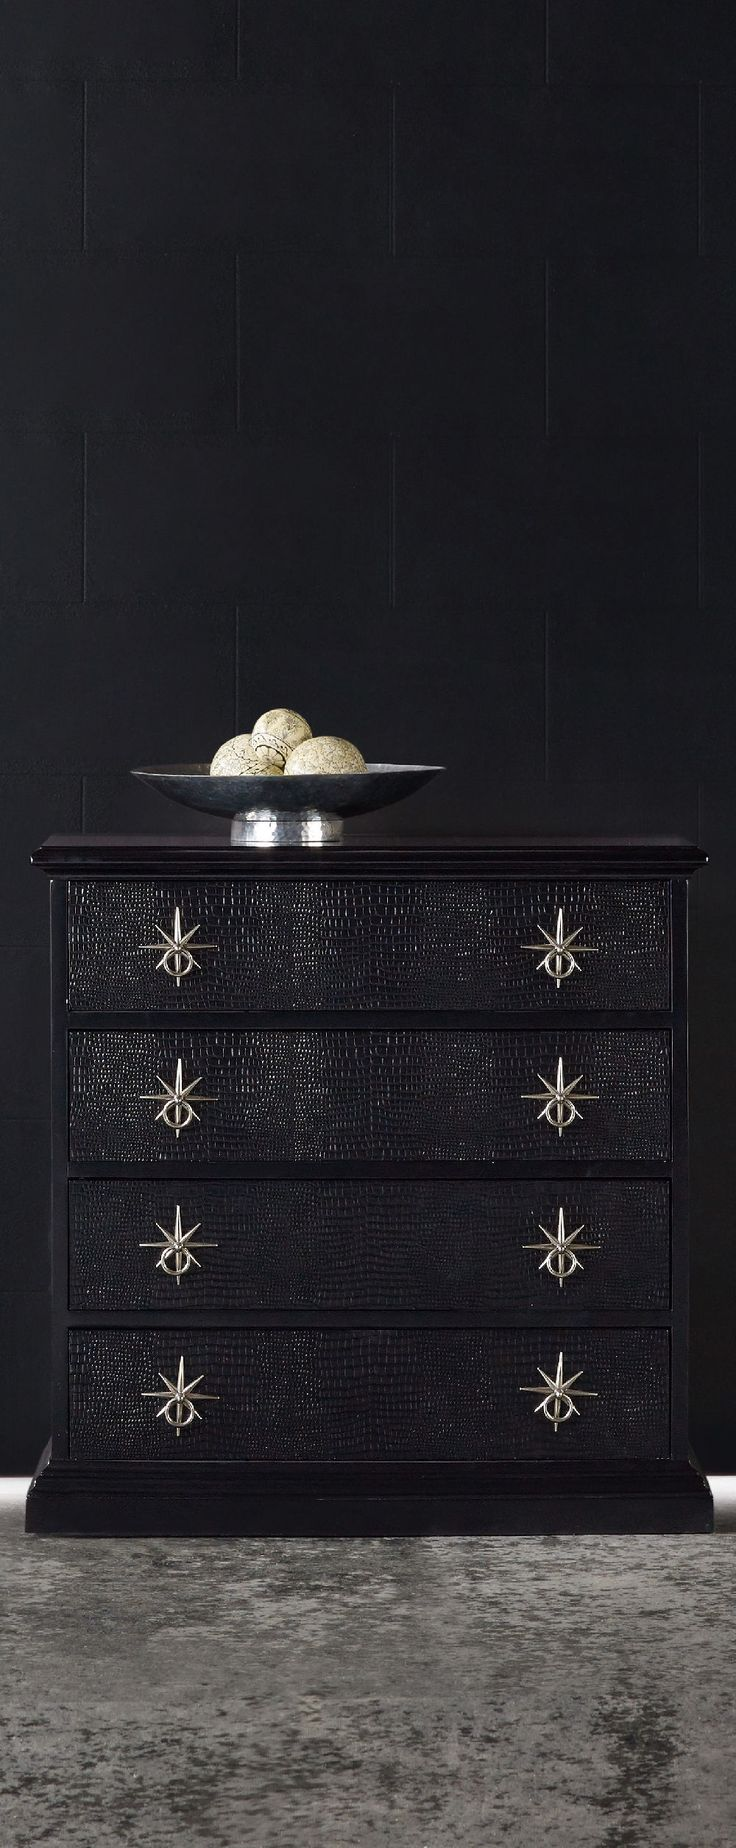 """luxury chest of drawers"" ""designer chest of drawers"" ""custom made chest of drawers"" By InStyle-Decor.com Hollywood, for more ""chest"" inspirations use our site search box term ""chest"" luxury chest of drawers, designer chest of drawers, custom made chest of drawers, custom chest of drawers, high quality chest of drawers, high end chest of drawers, modern chest of drawers, contemporary chest of drawers, luxury furniture, luxury bedroom furniture, designer furniture, designer bedroom furniture,"